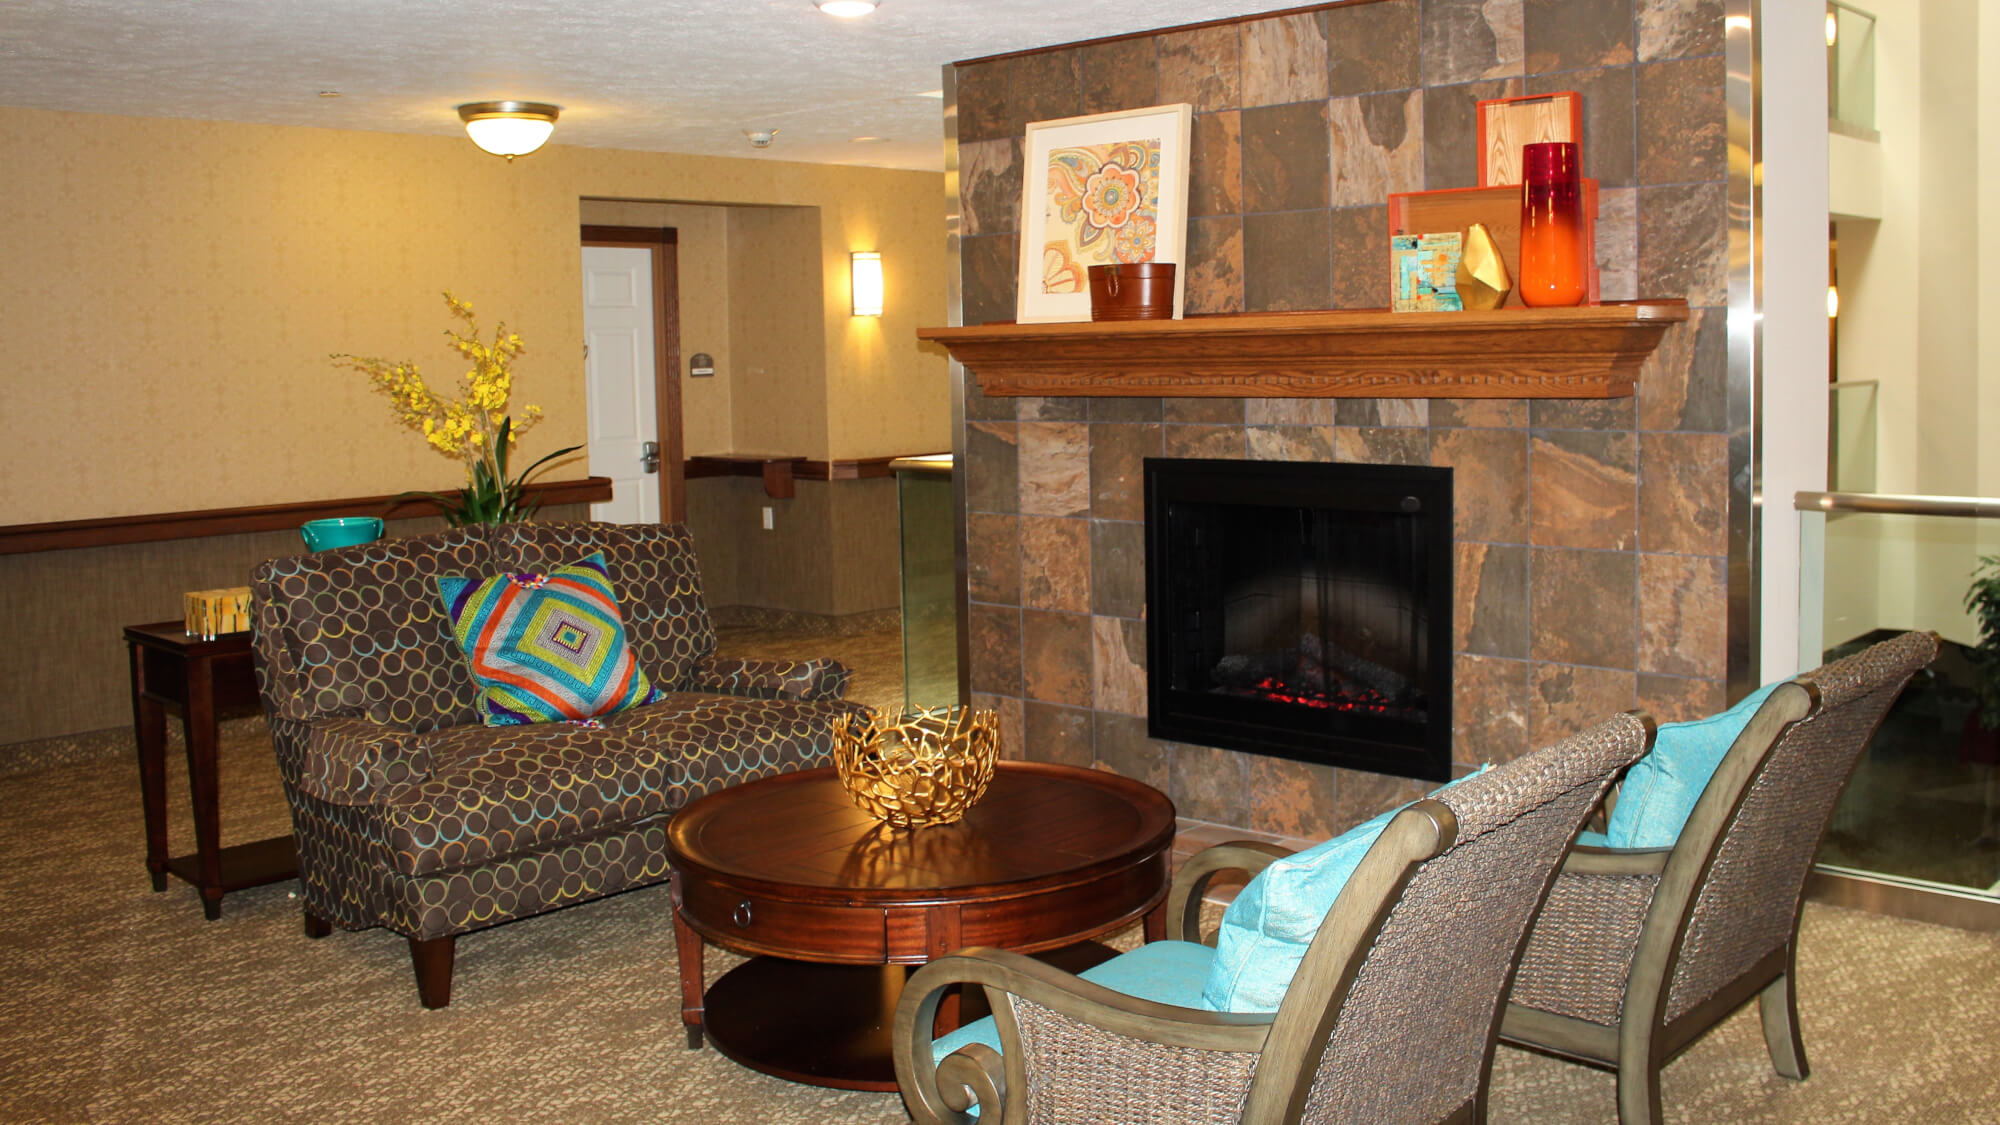 Cozy gathering spot in front of the fireplace at Towne Center.